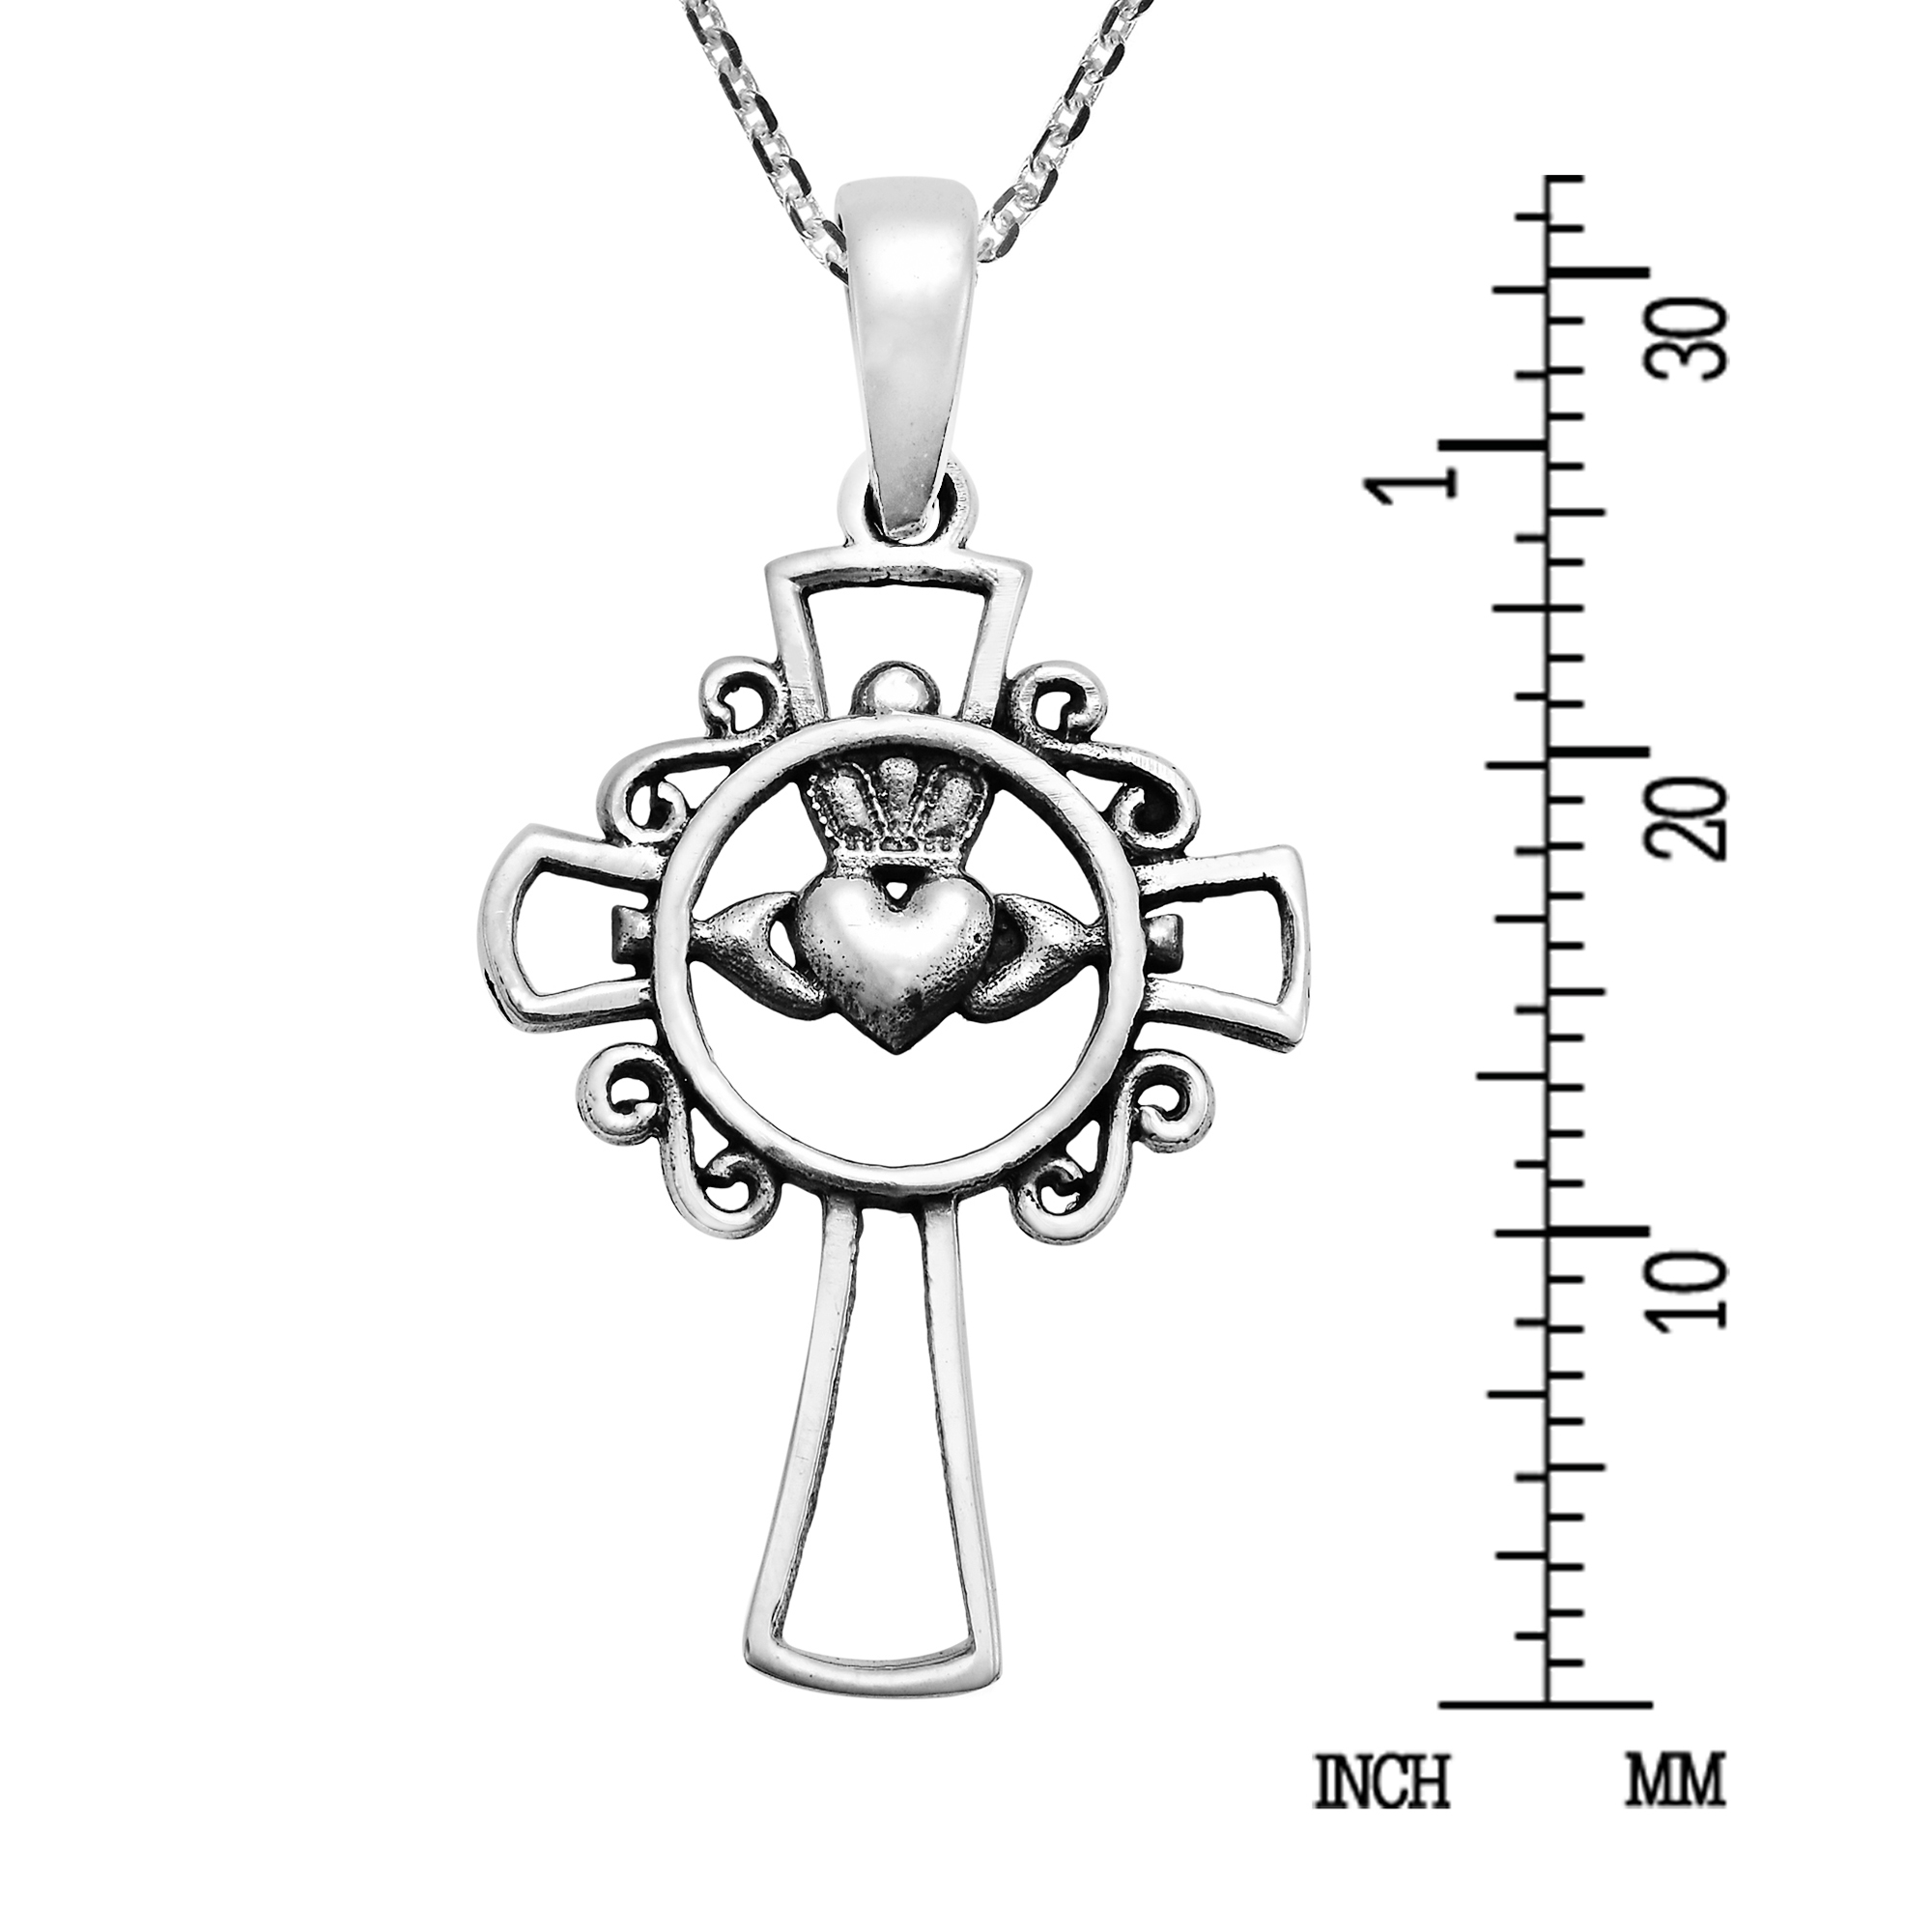 Stylish Claddagh Within A Cross Sterling Silver Necklace Aeravida